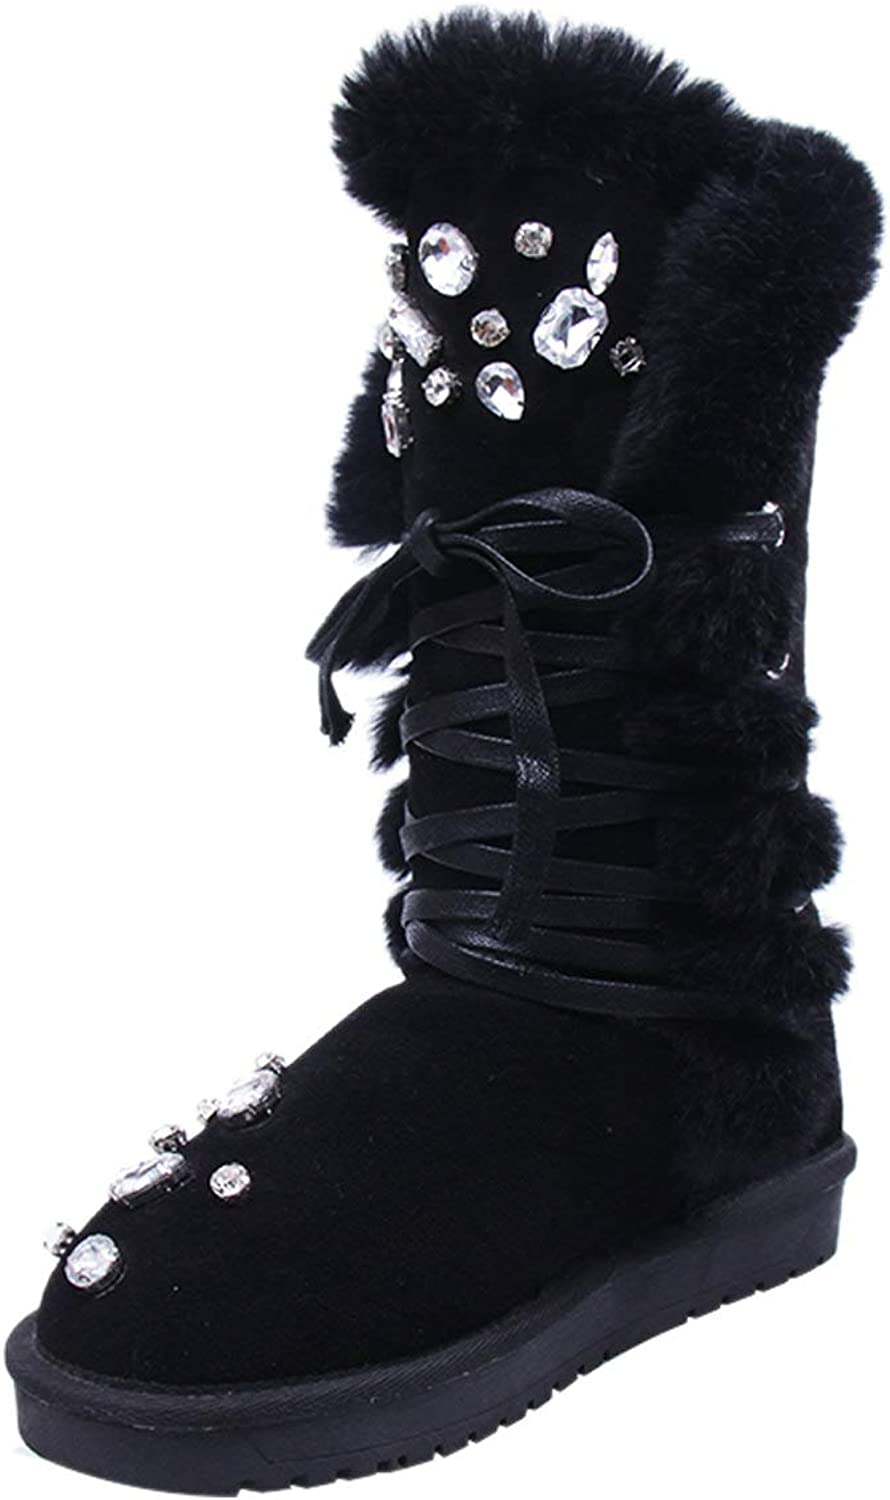 MARHEE Women Winter shoes Plush Warm Snow Boots Artificial Crystal Lace Up Warm Boots